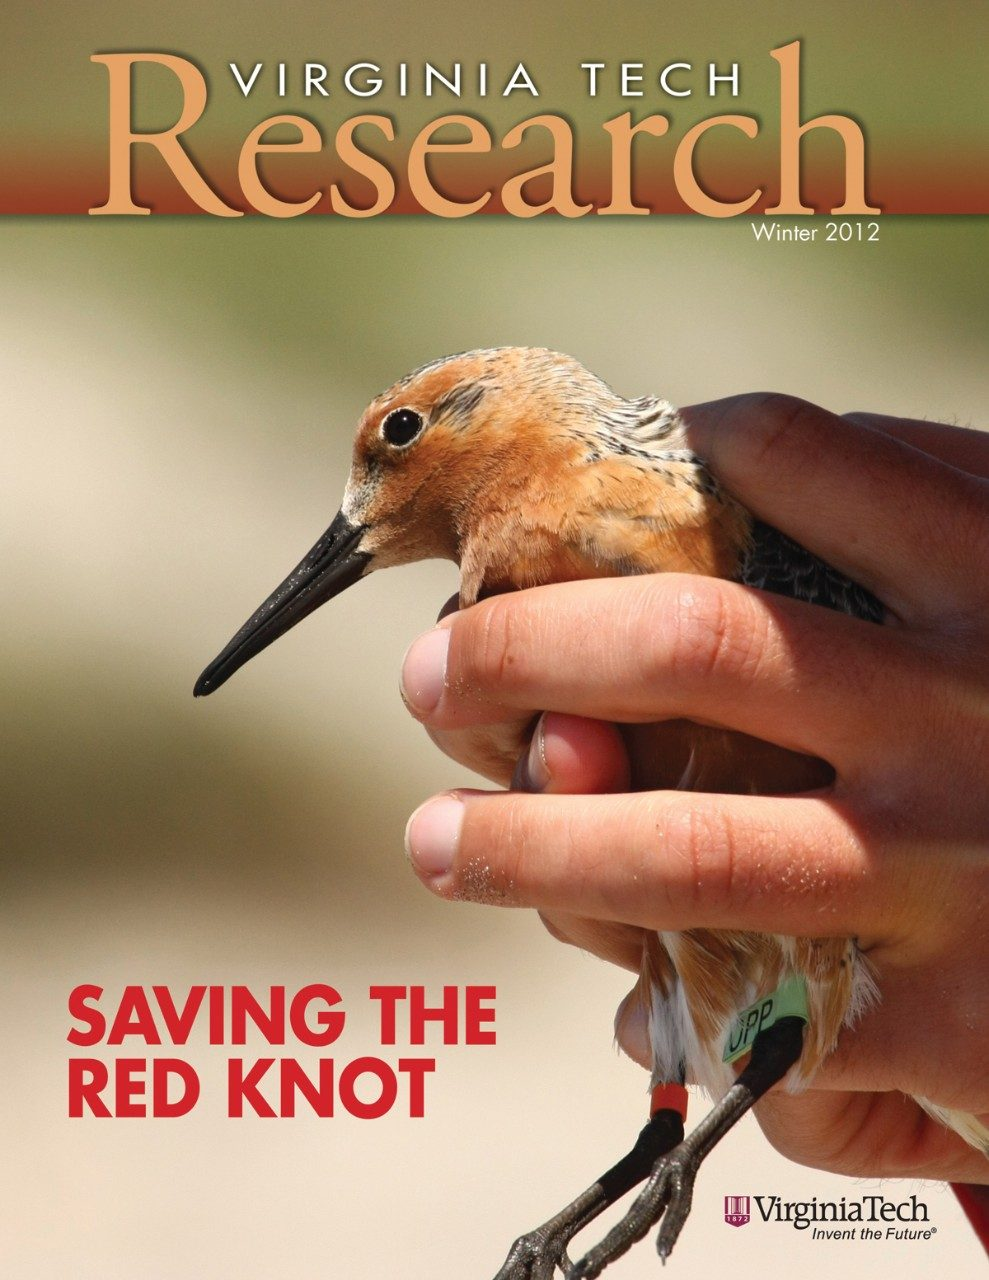 The cover photo for the winter 2012 Virginia Tech research magazine was taken by Brian Gerber of Amherst, Mass., a graduate student in wildlife science in the Virginia Tech College of Natural Resources and Environment.